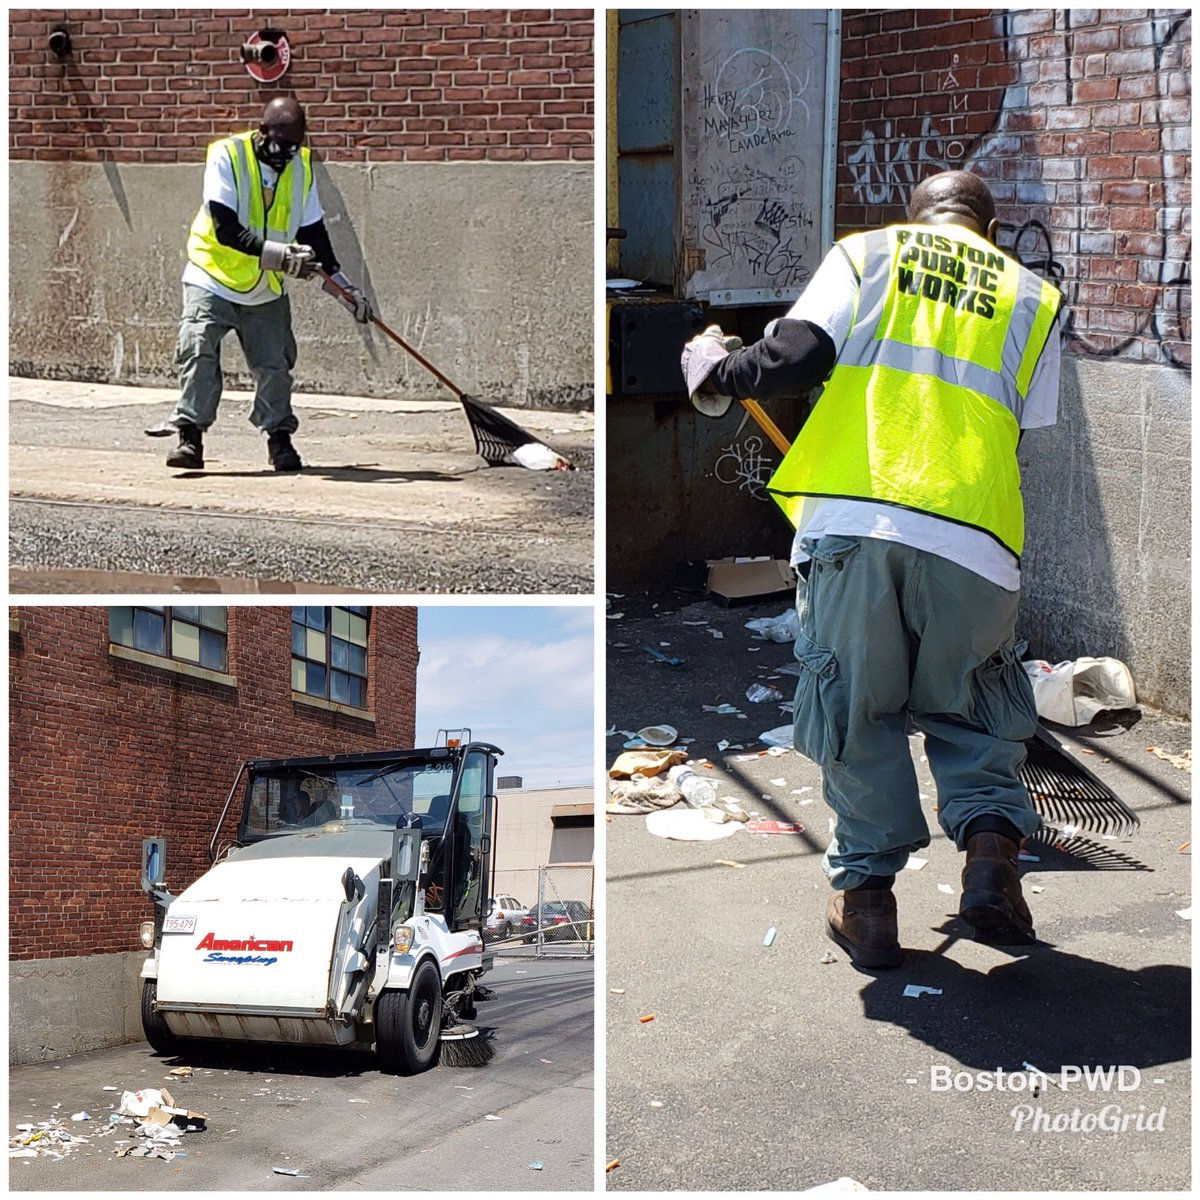 PWD's District 1 crew is busy cleaning and sweeping litter on Topeka St. in the #SouthEnd.